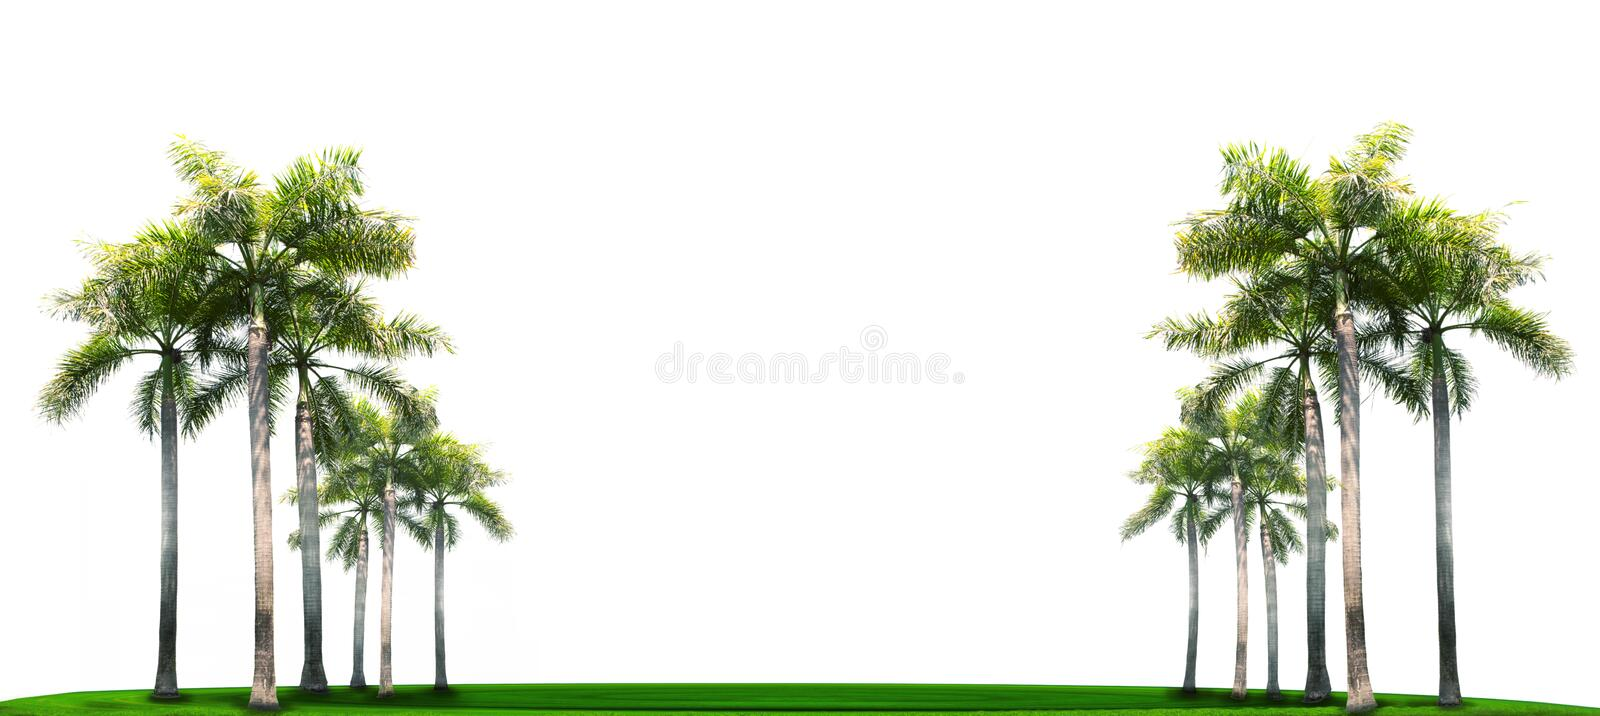 Palm tree on green grass field with white space